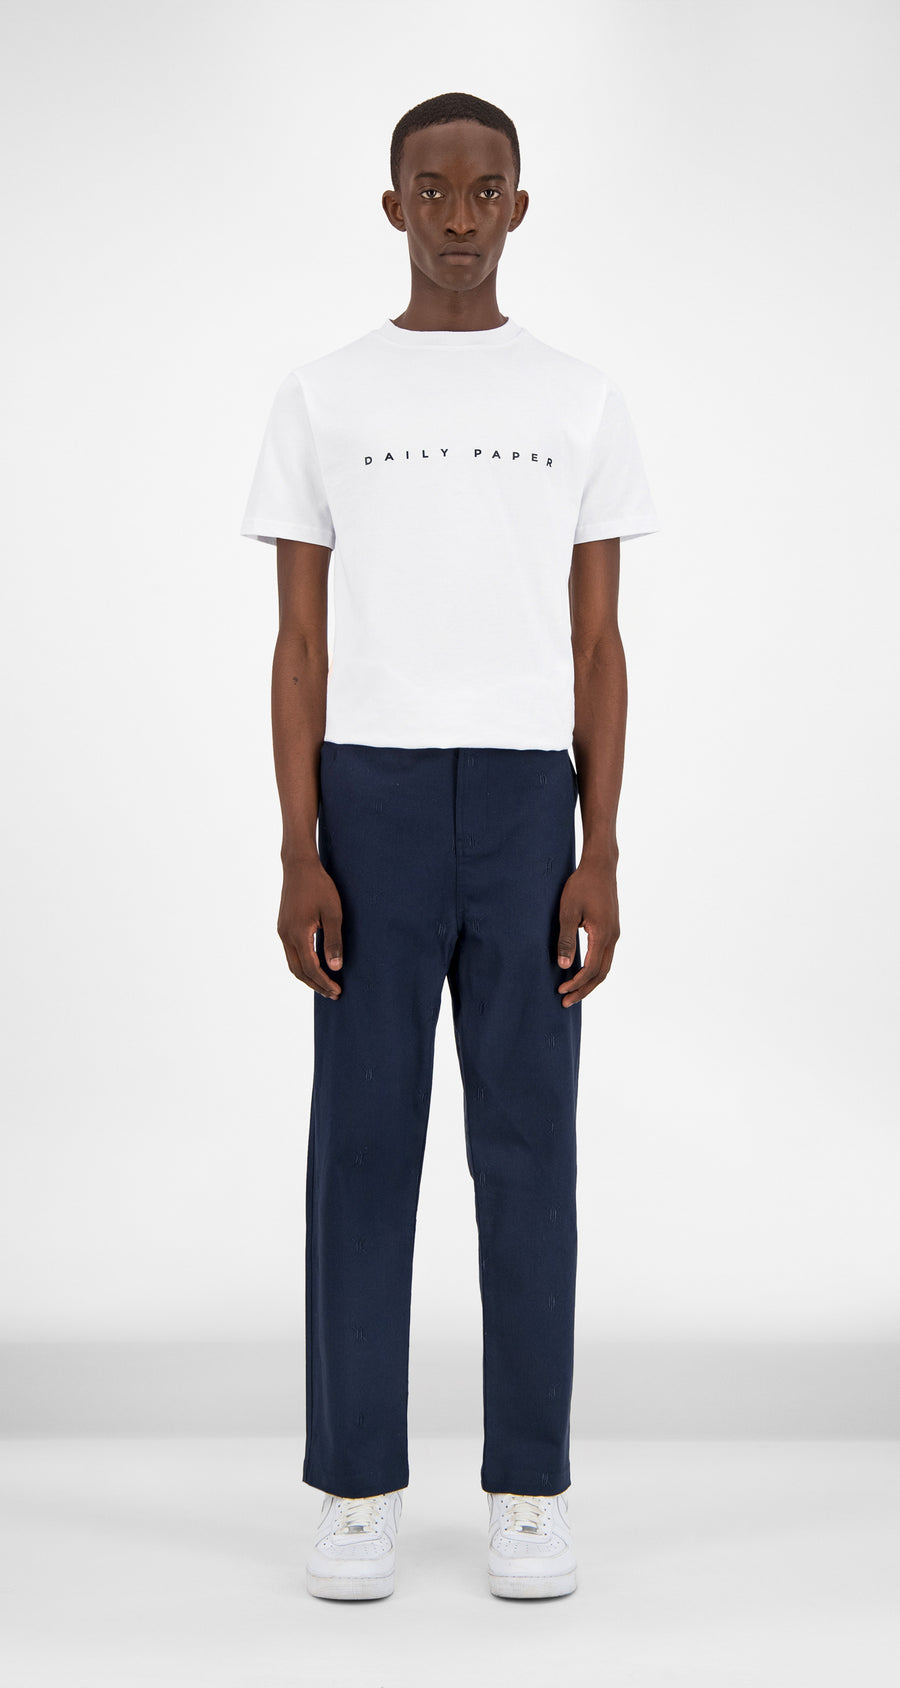 Daily Paper - Navy Kenya Pants Men Front